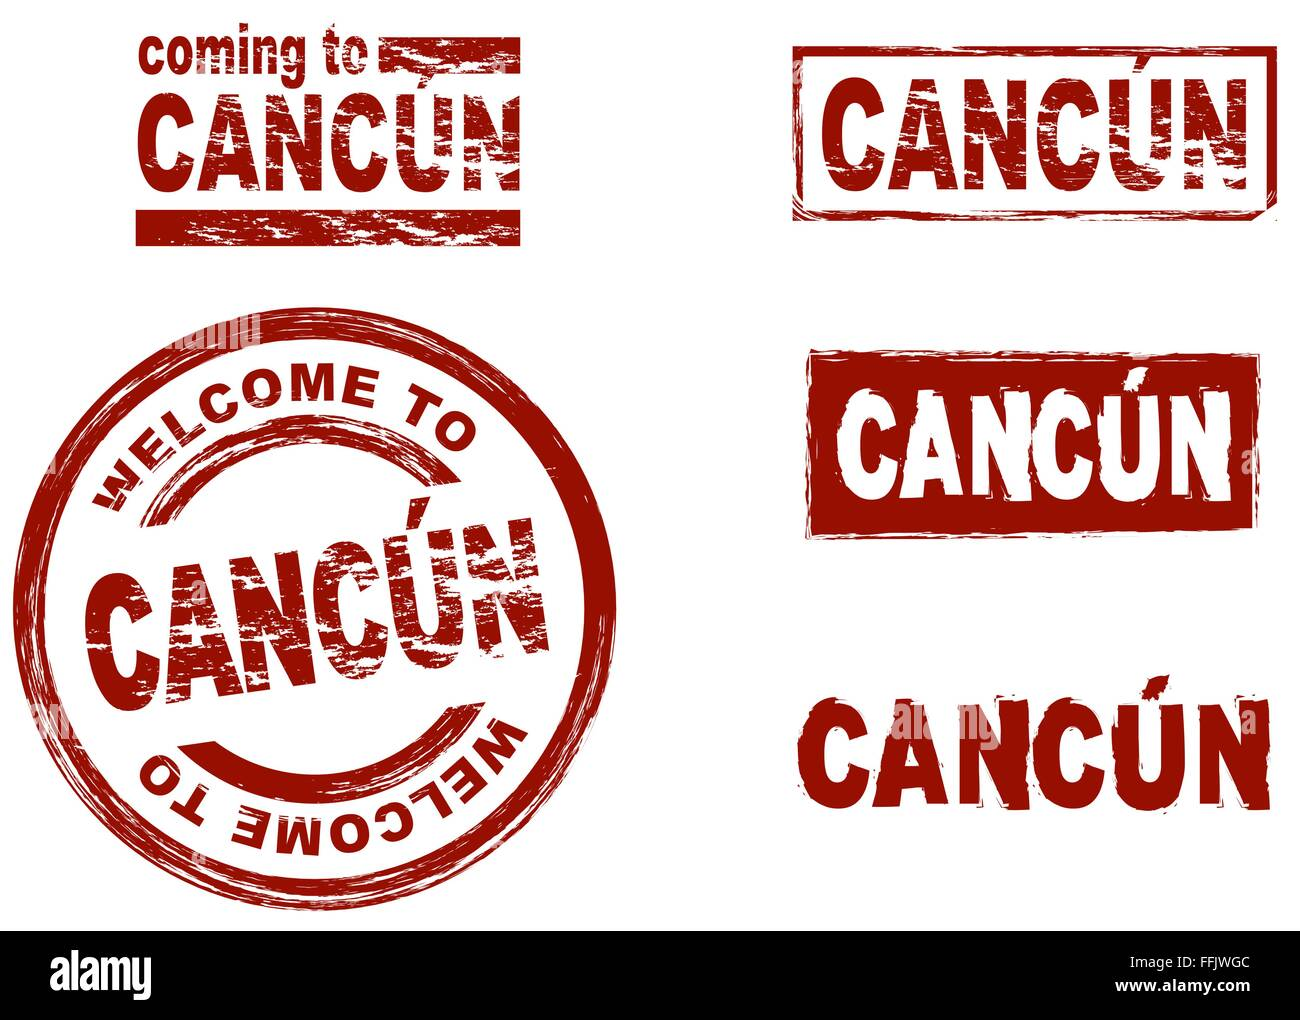 Set Of Stylized Ink Stamps Showing The City Of Cancun Stock Vector